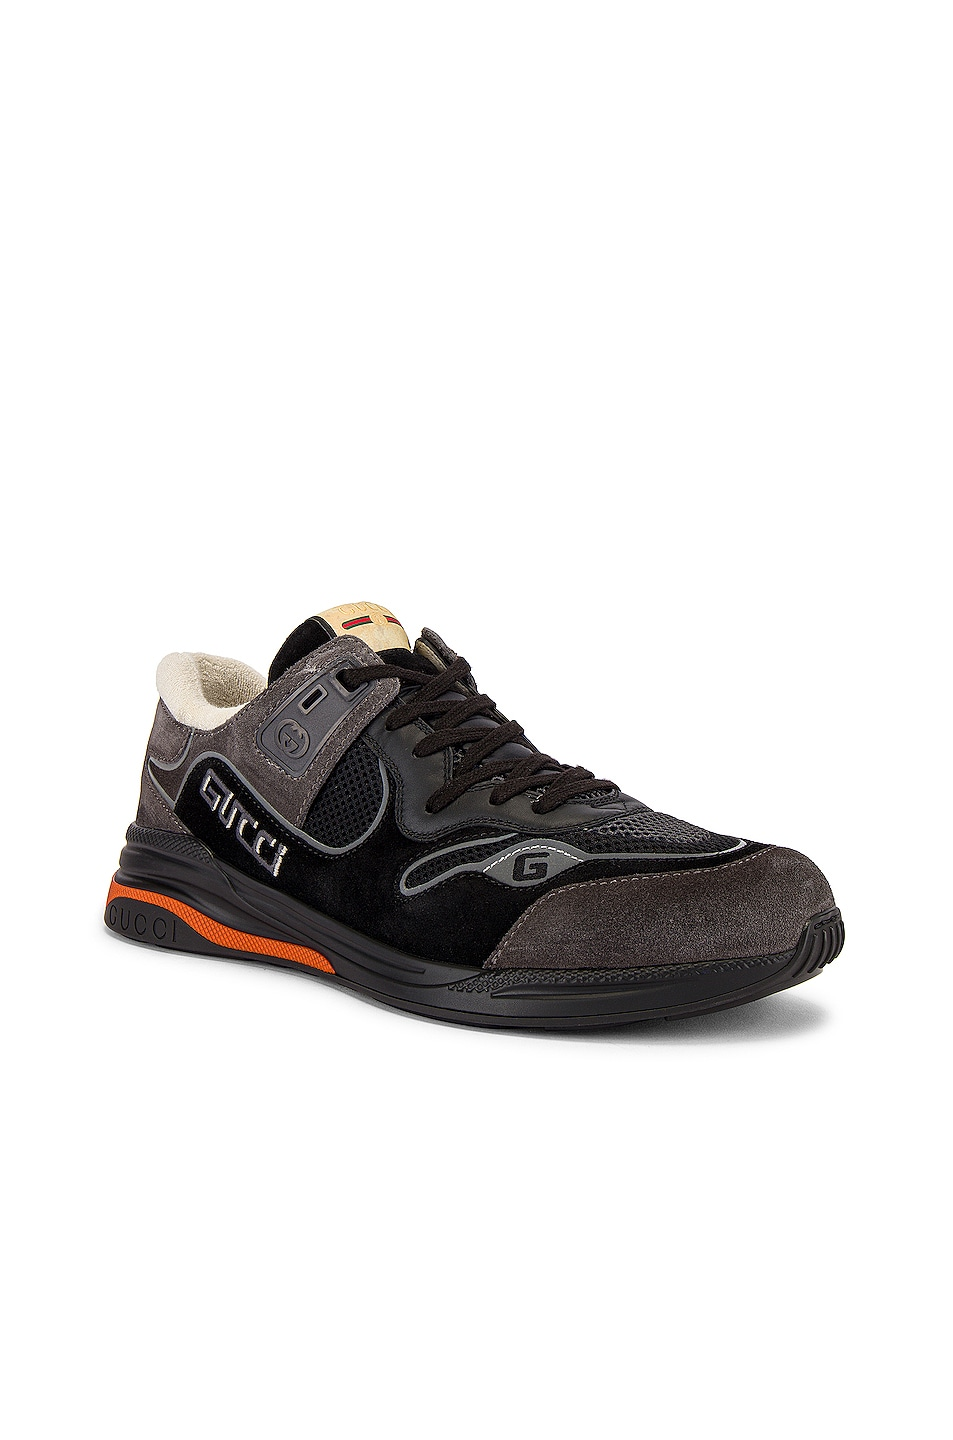 Image 1 of Gucci G Line Low Top Sneaker in Black & Silver